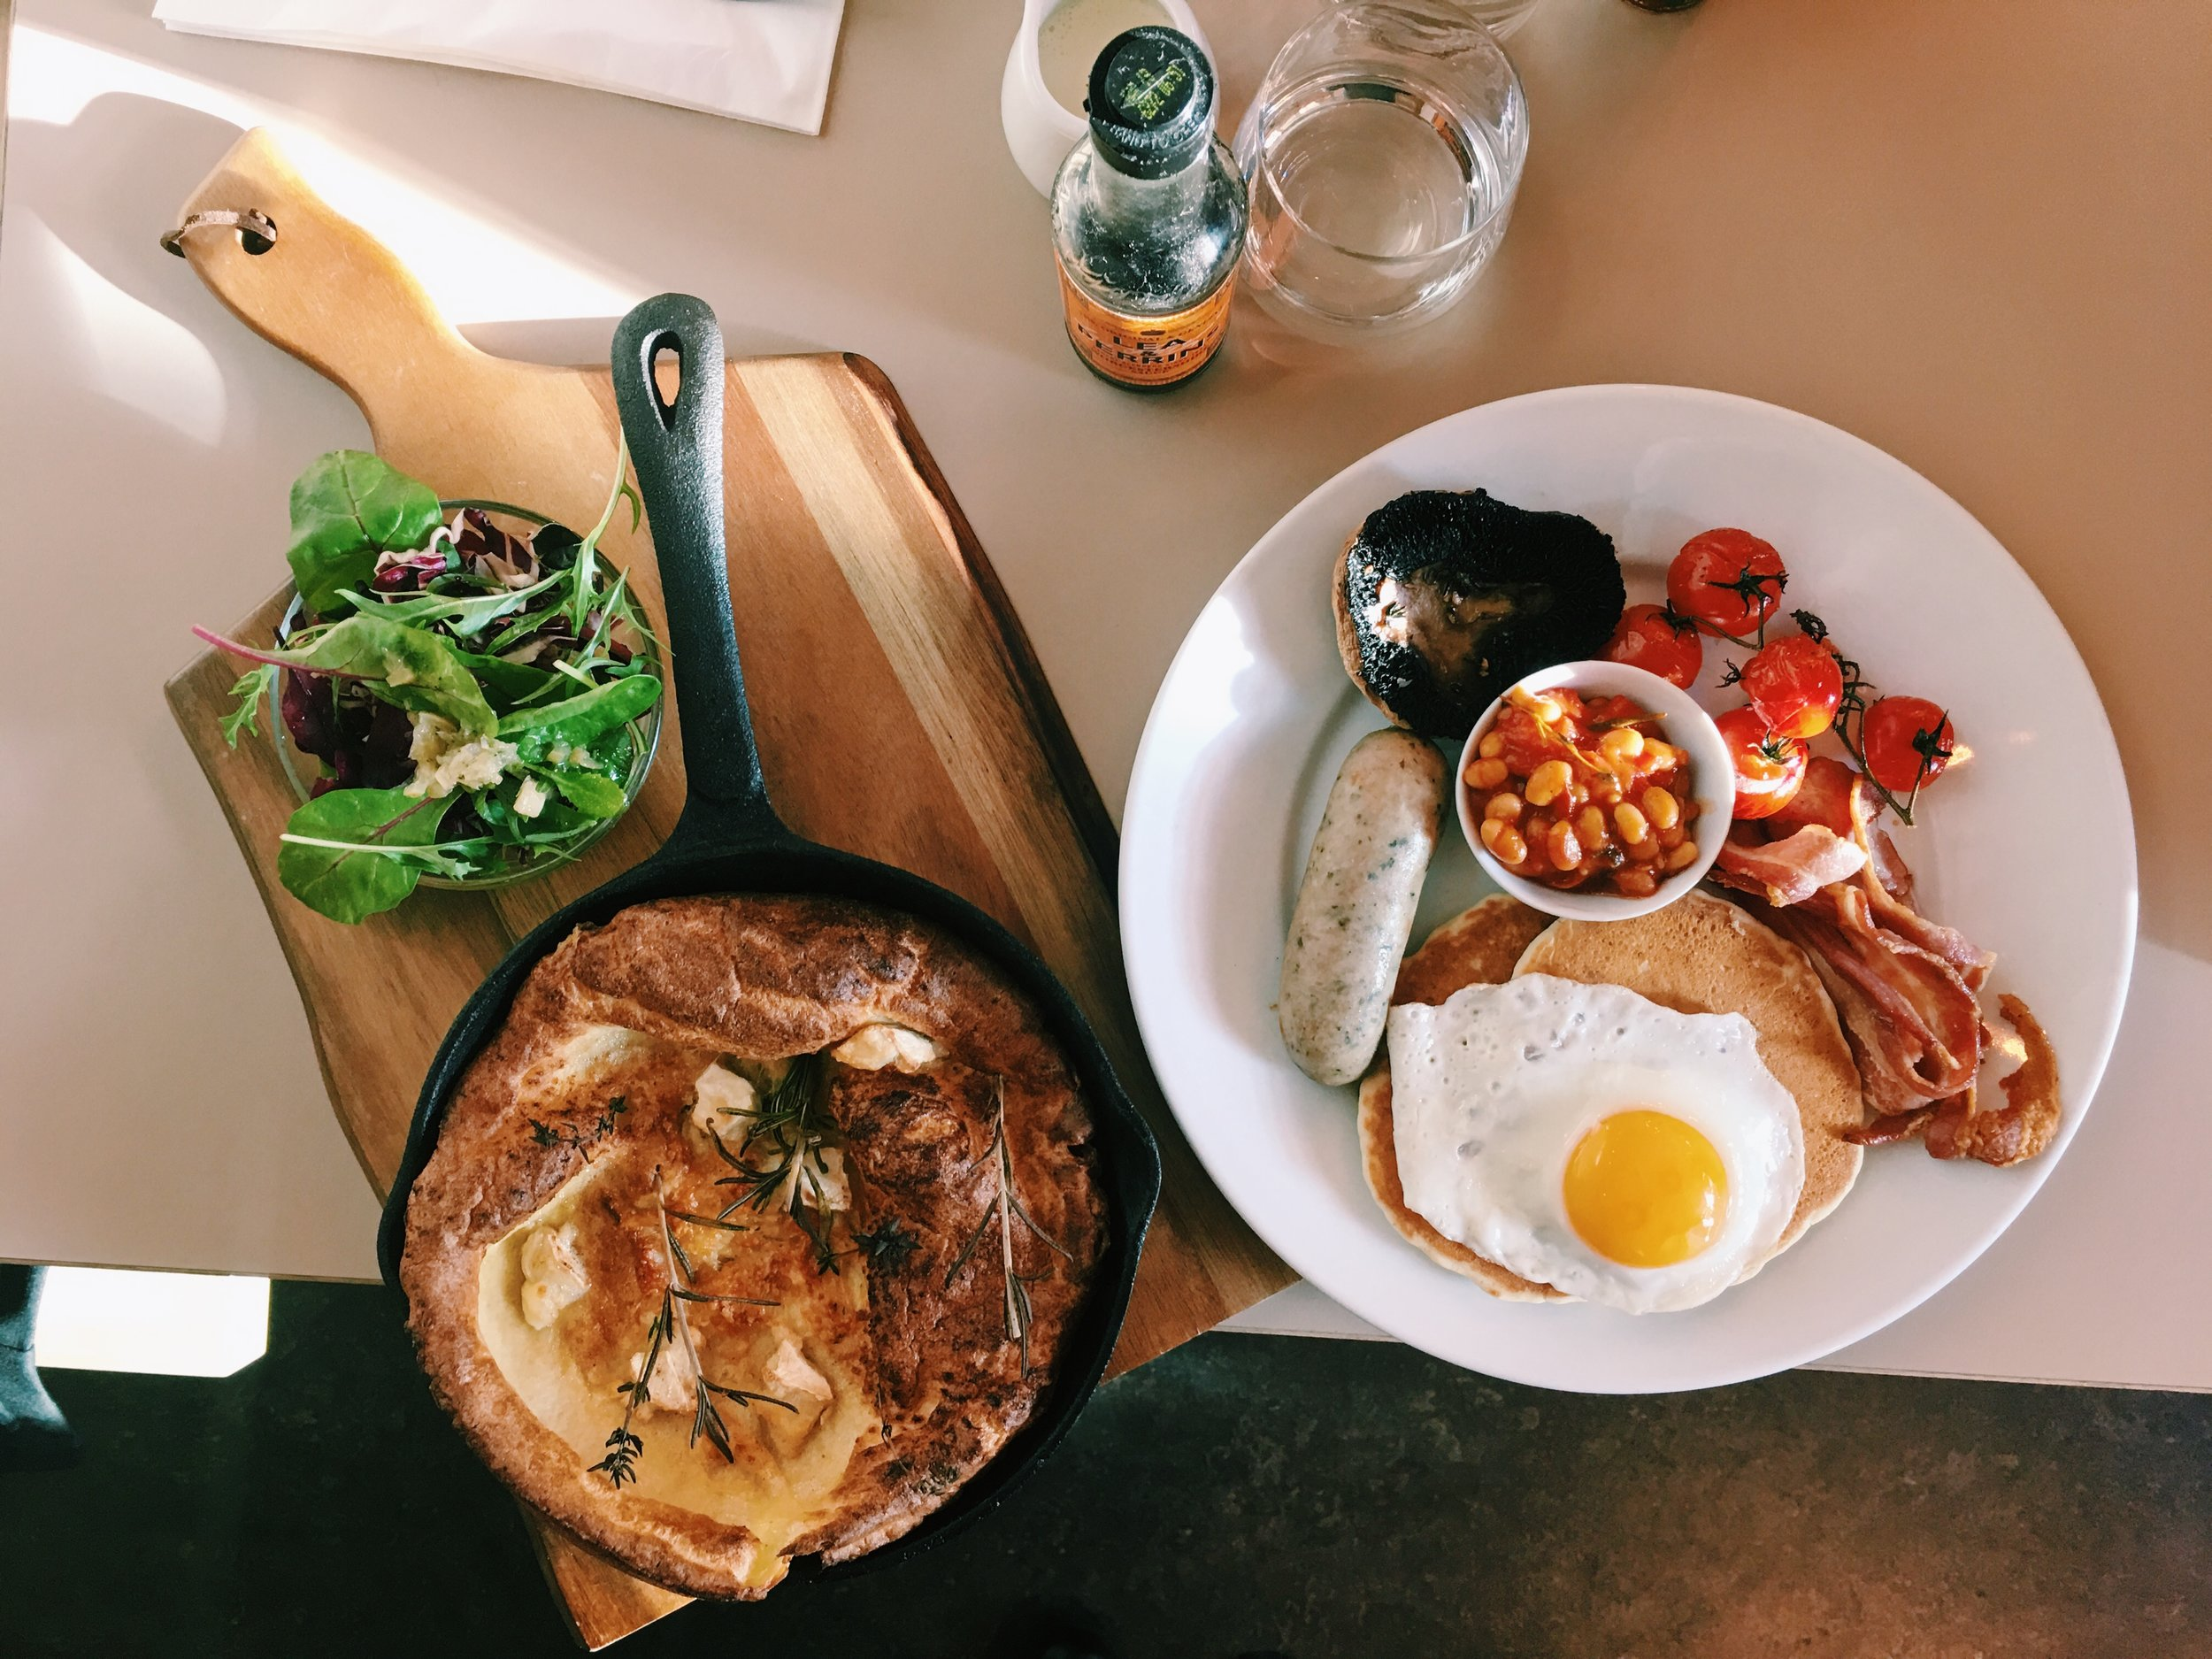 The Savo(u)ry Dutch Baby (left) and the Breakfast (right), Where the Pancakes Are, London